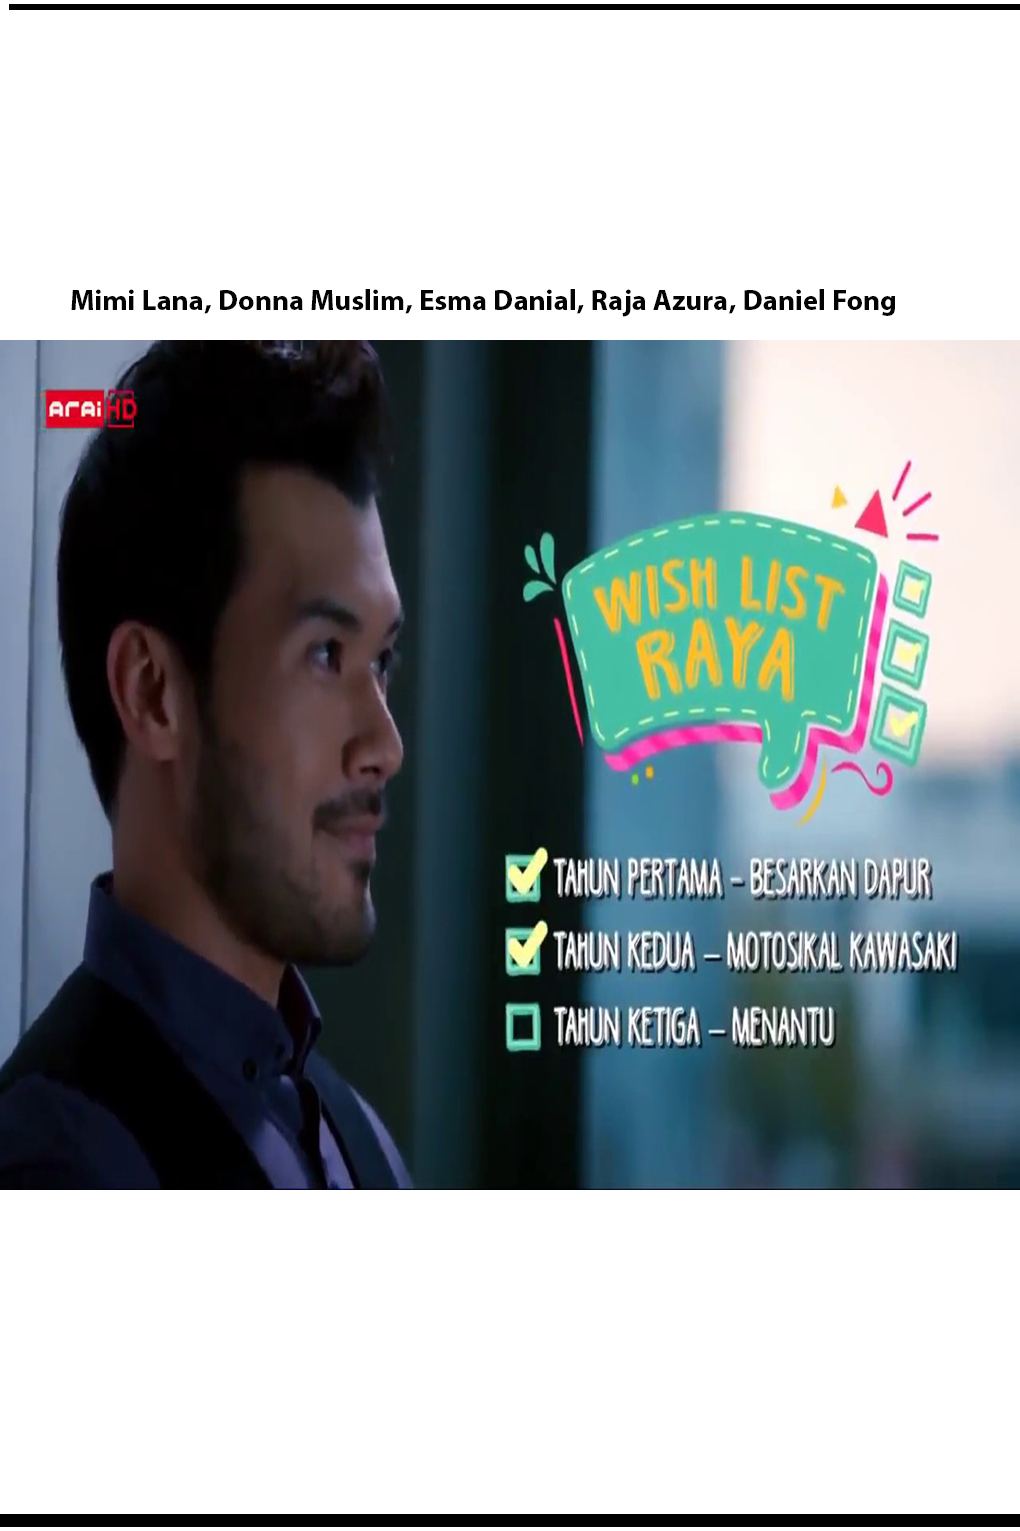 Wish List Raya [2018 Malaysia Movie Raya] Drama, Raya